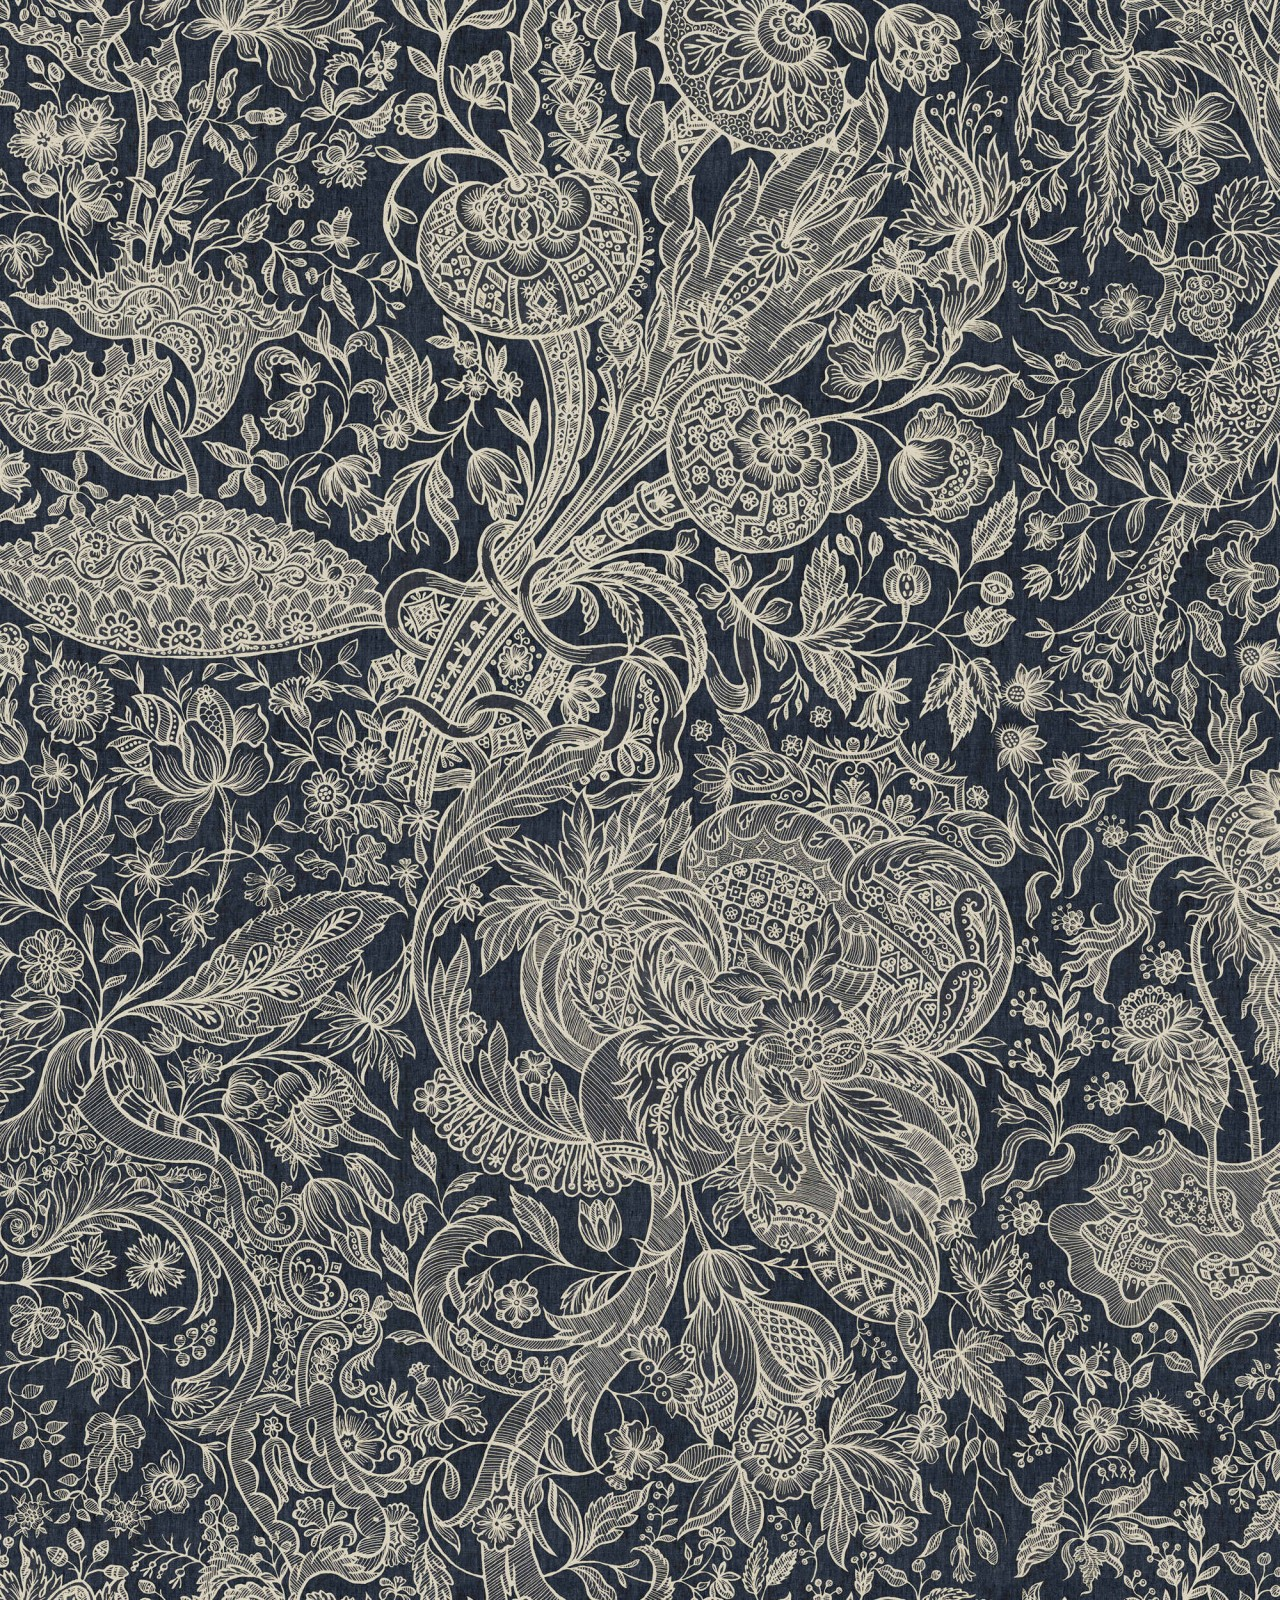 SARKOZI EMBROIDERY Indigo Wallpaper